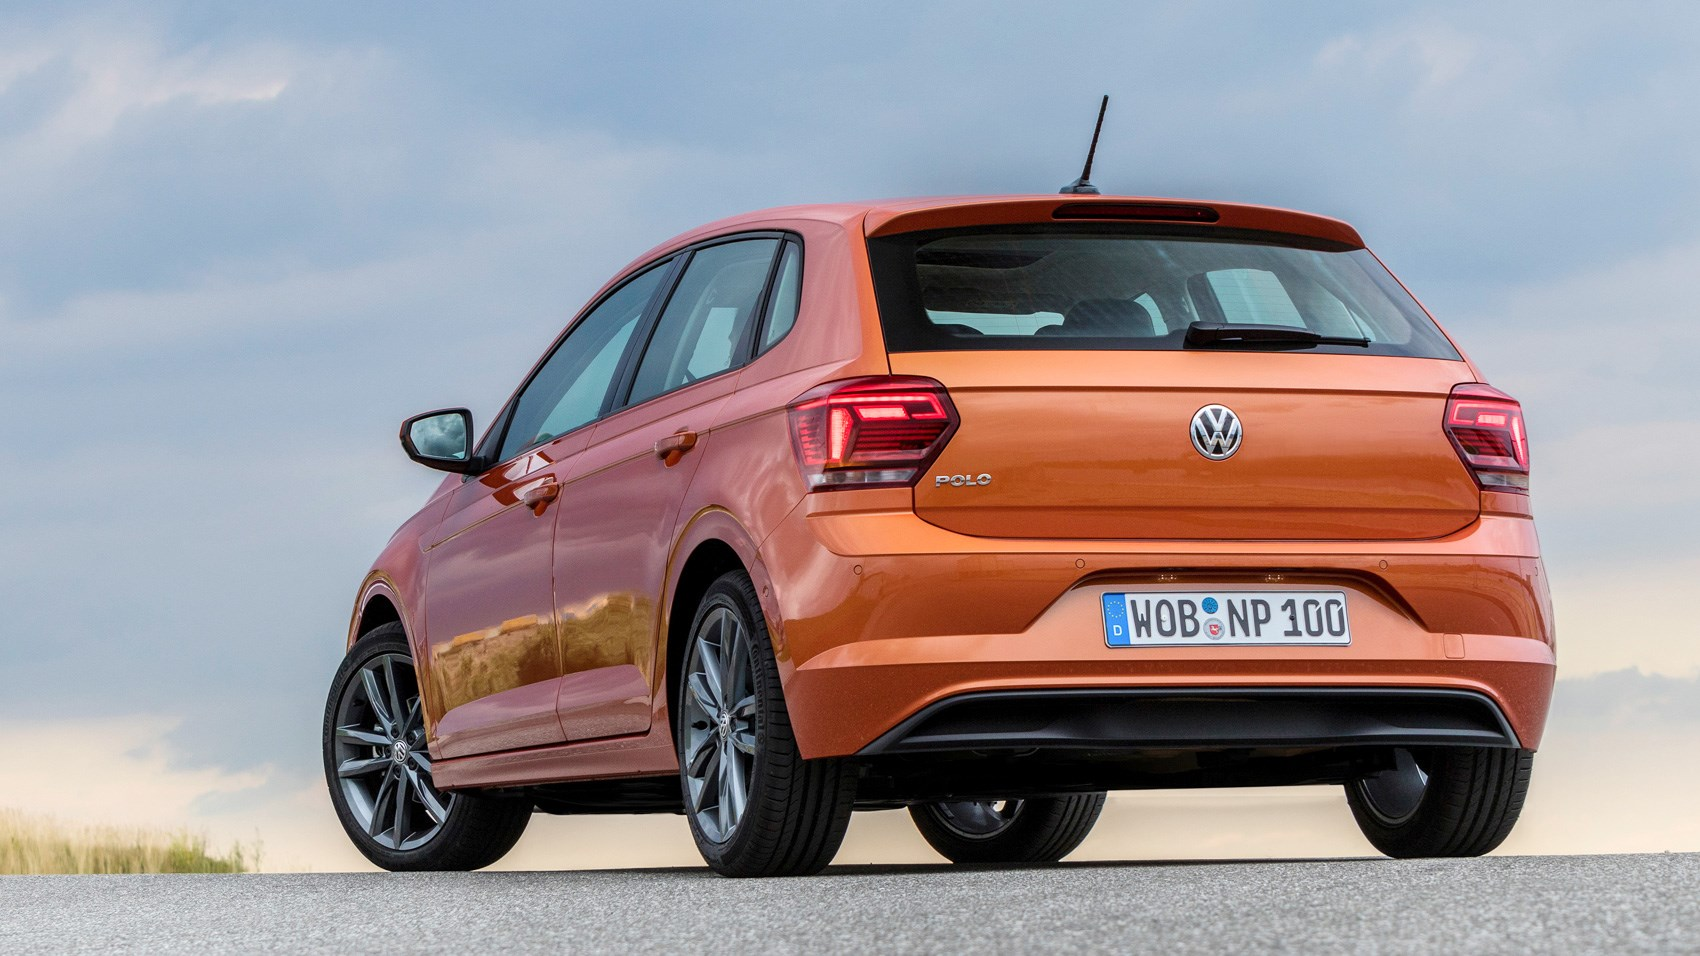 A1 besides Volkswagen Polo 2018 Review besides 376758691 besides Geneva 2015 Volkswagen moreover Volkswagen Tiguan R Line 20 Tdi 160 4motion Dsg 2016 Review. on average car vw